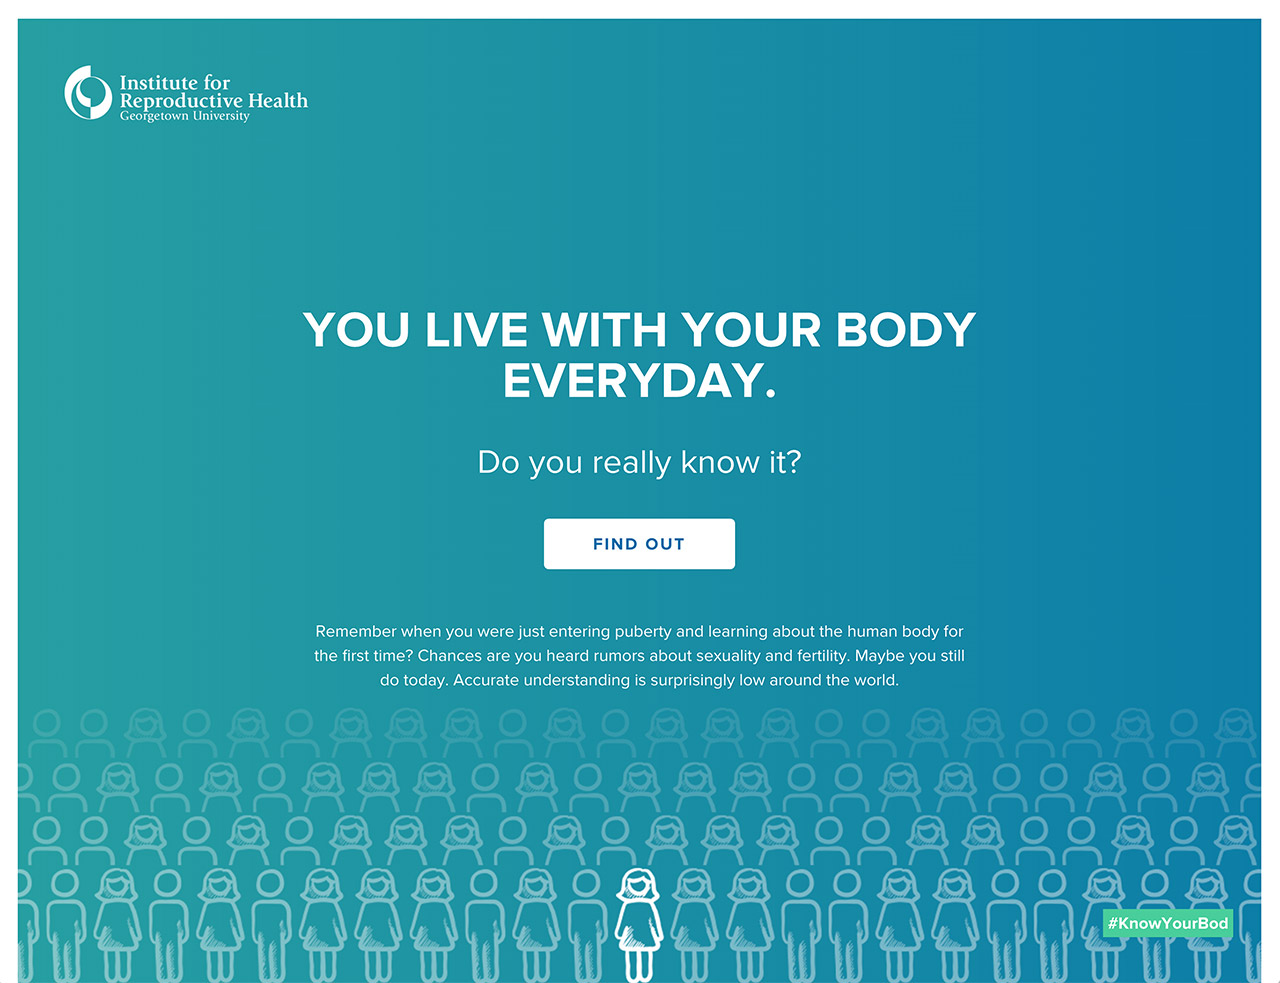 KnowYourBody Website Screenshot